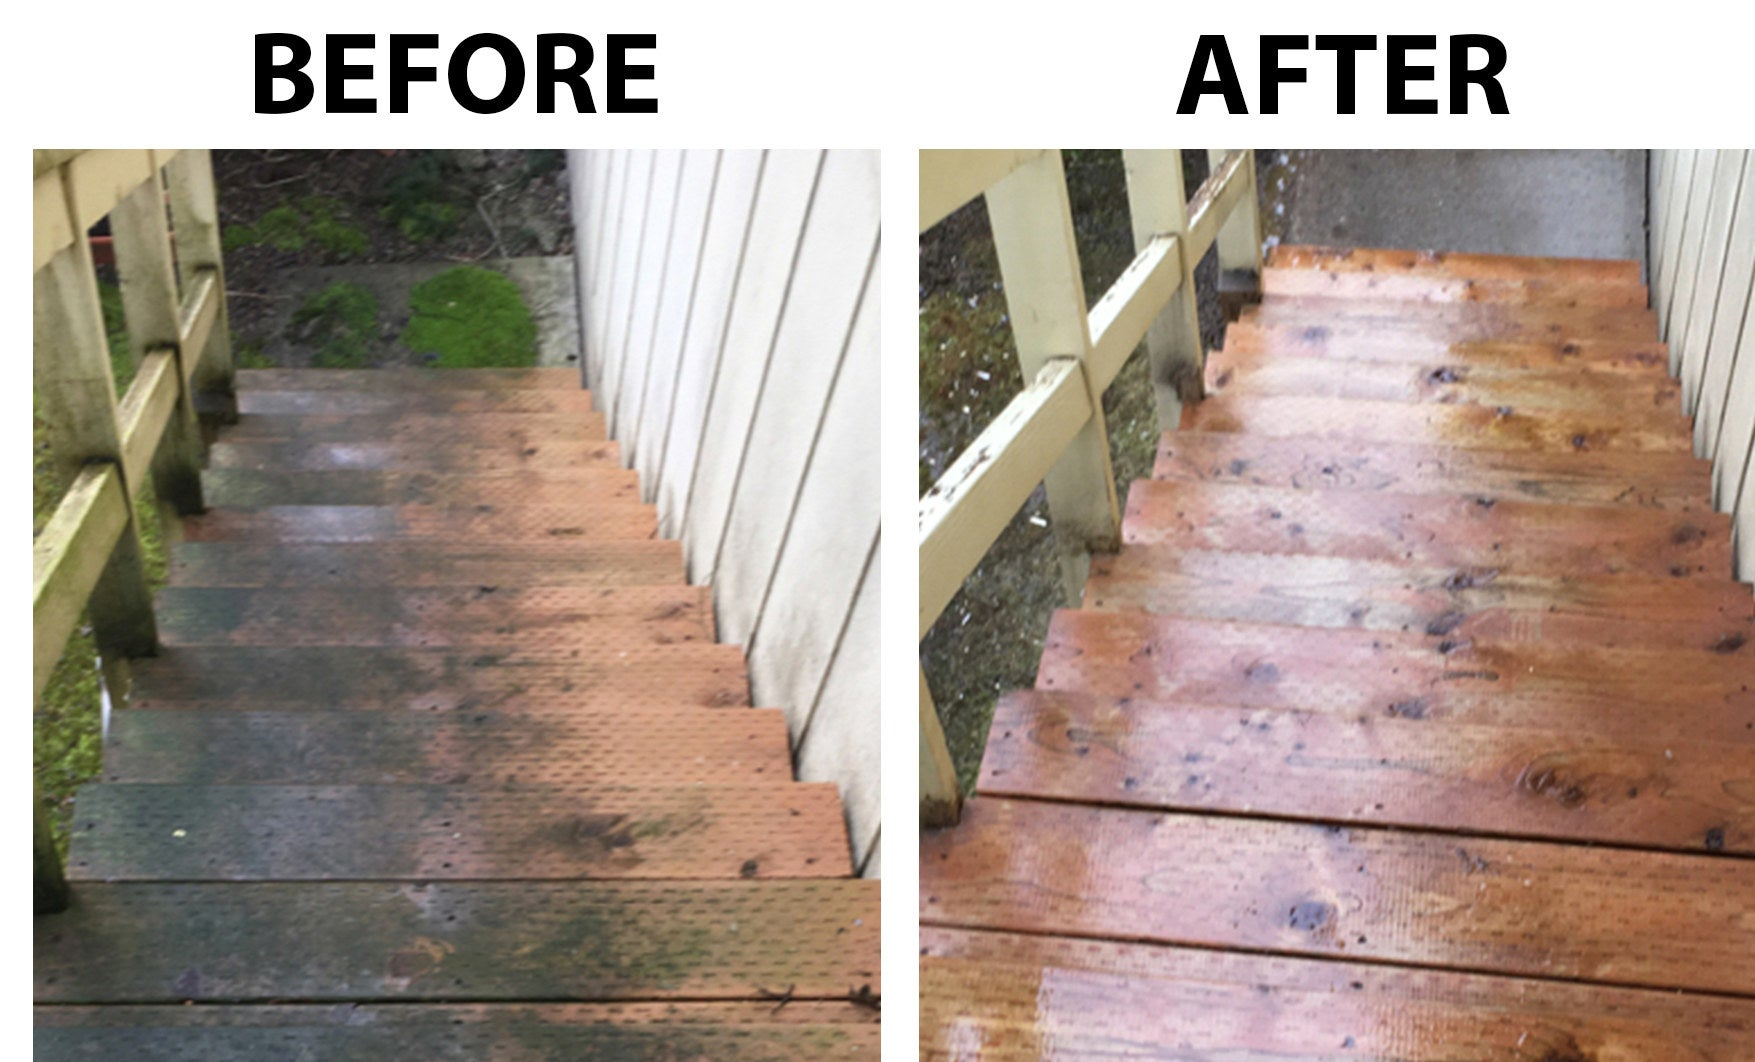 A before and after image: the before, with mold on wooden stairs; the after, with the mold cleaned off the stairs